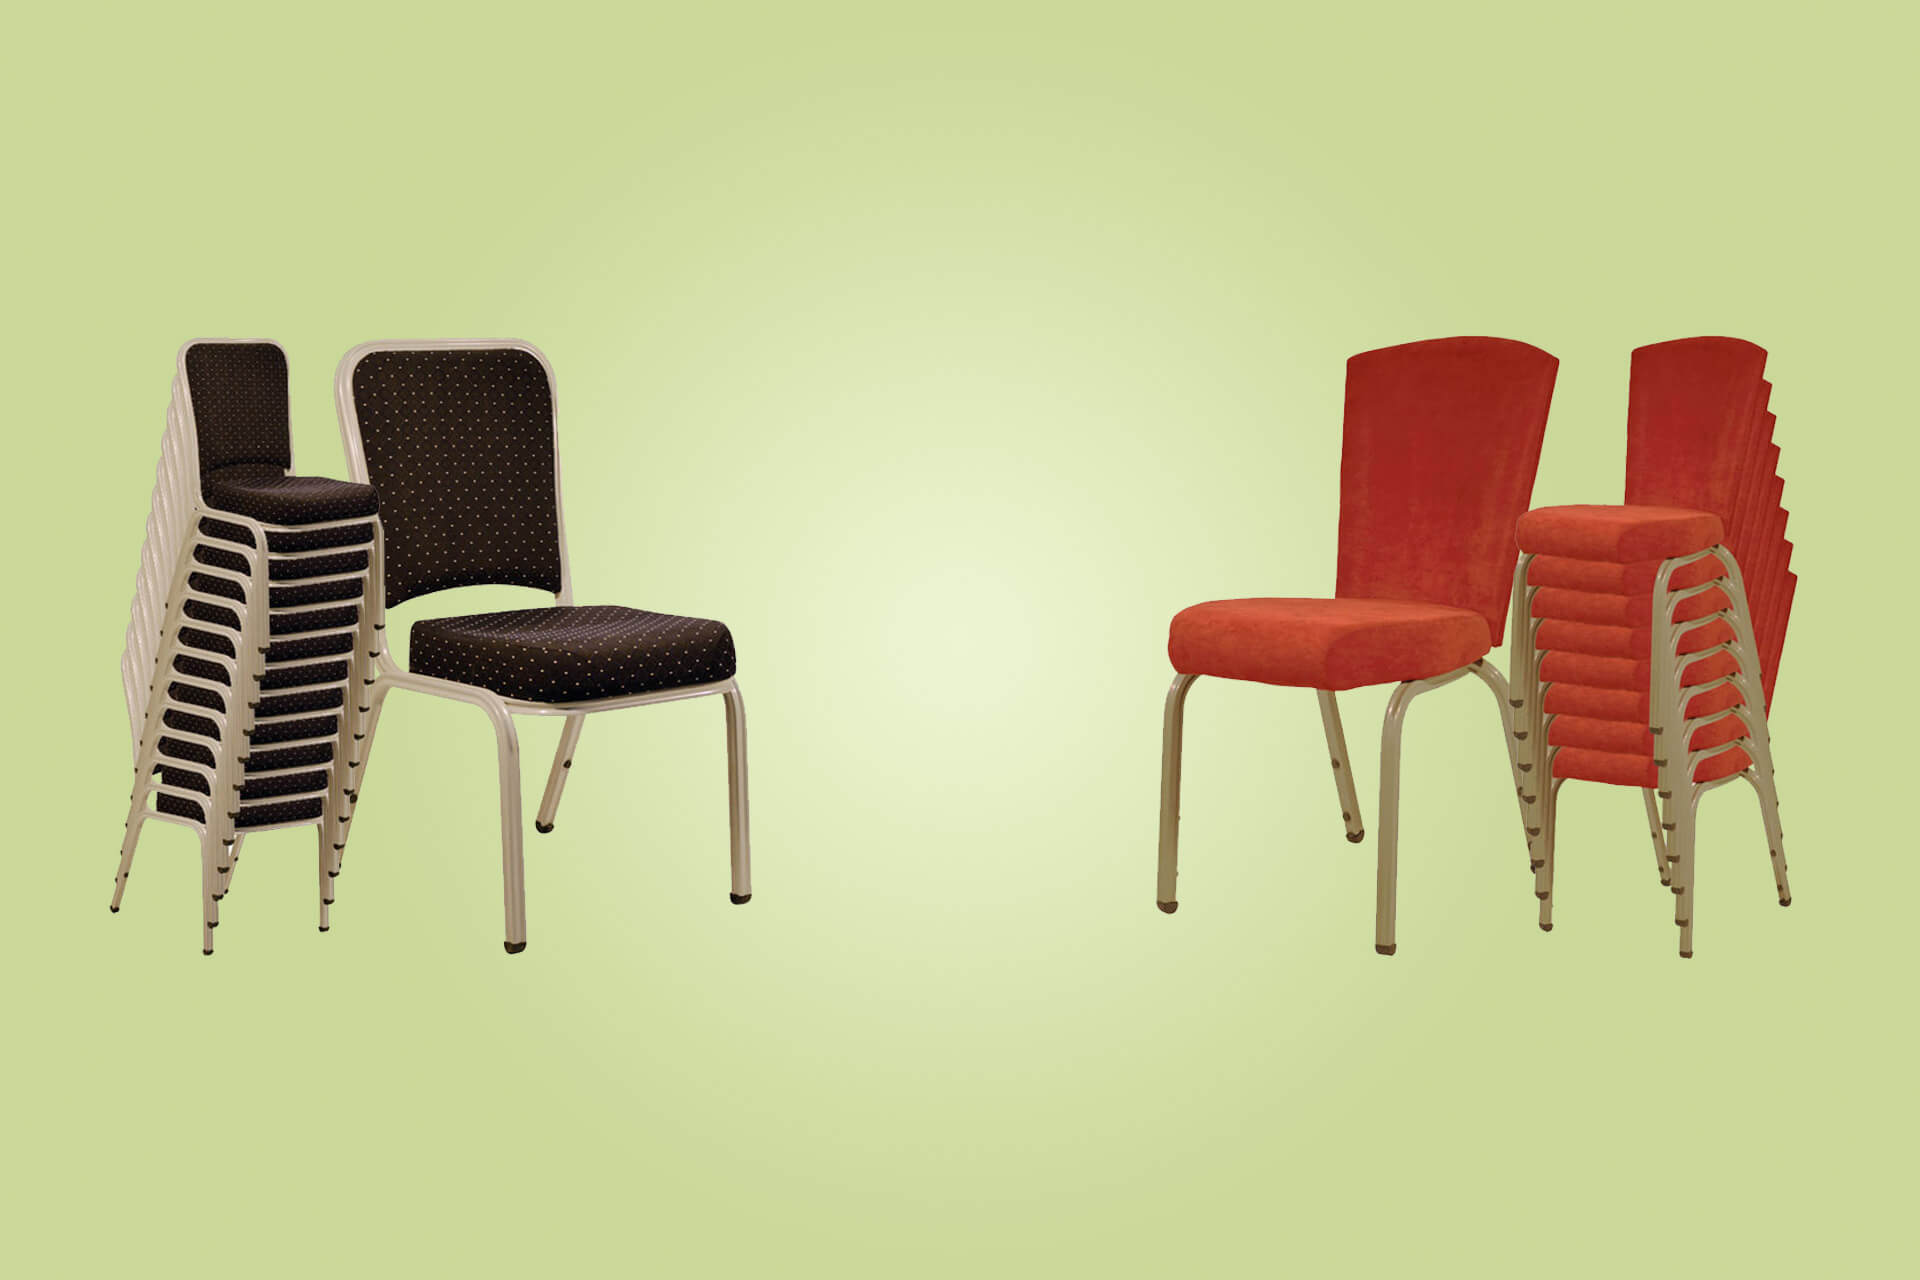 Chairium Turkish Chair Table Manufacturer For Cafes